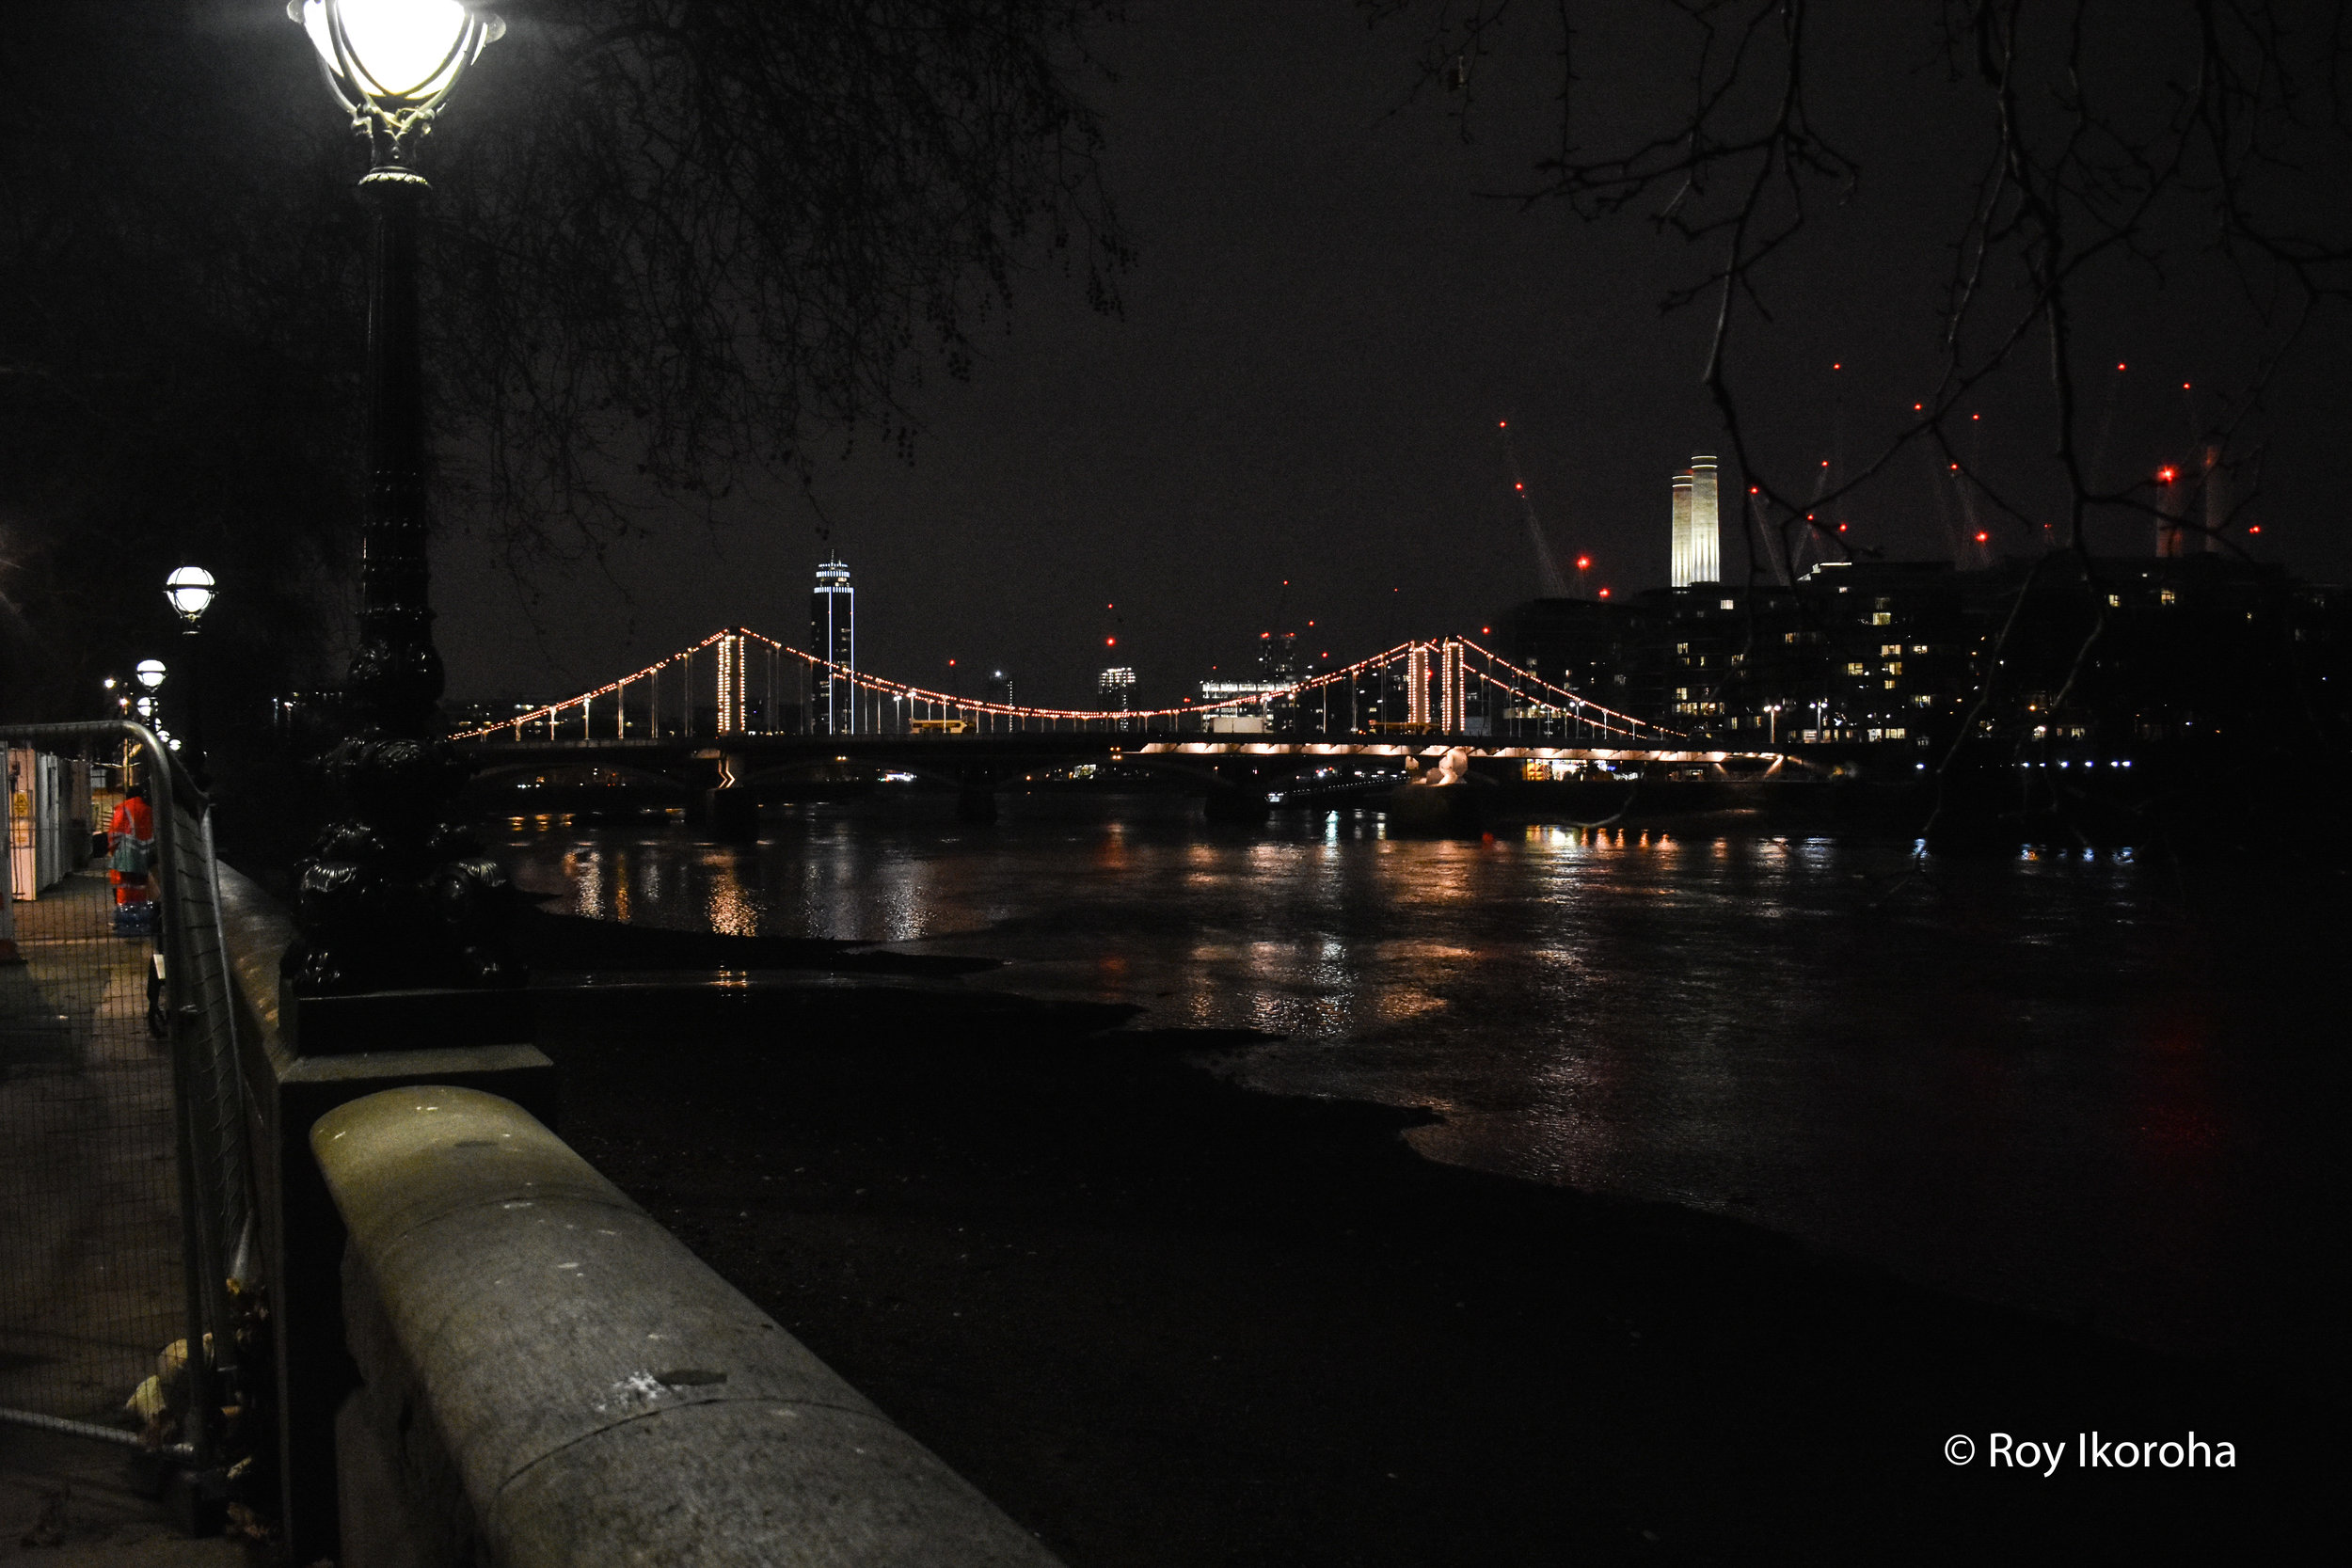 Chelsea Embankment/Bridge, Chelsea, London